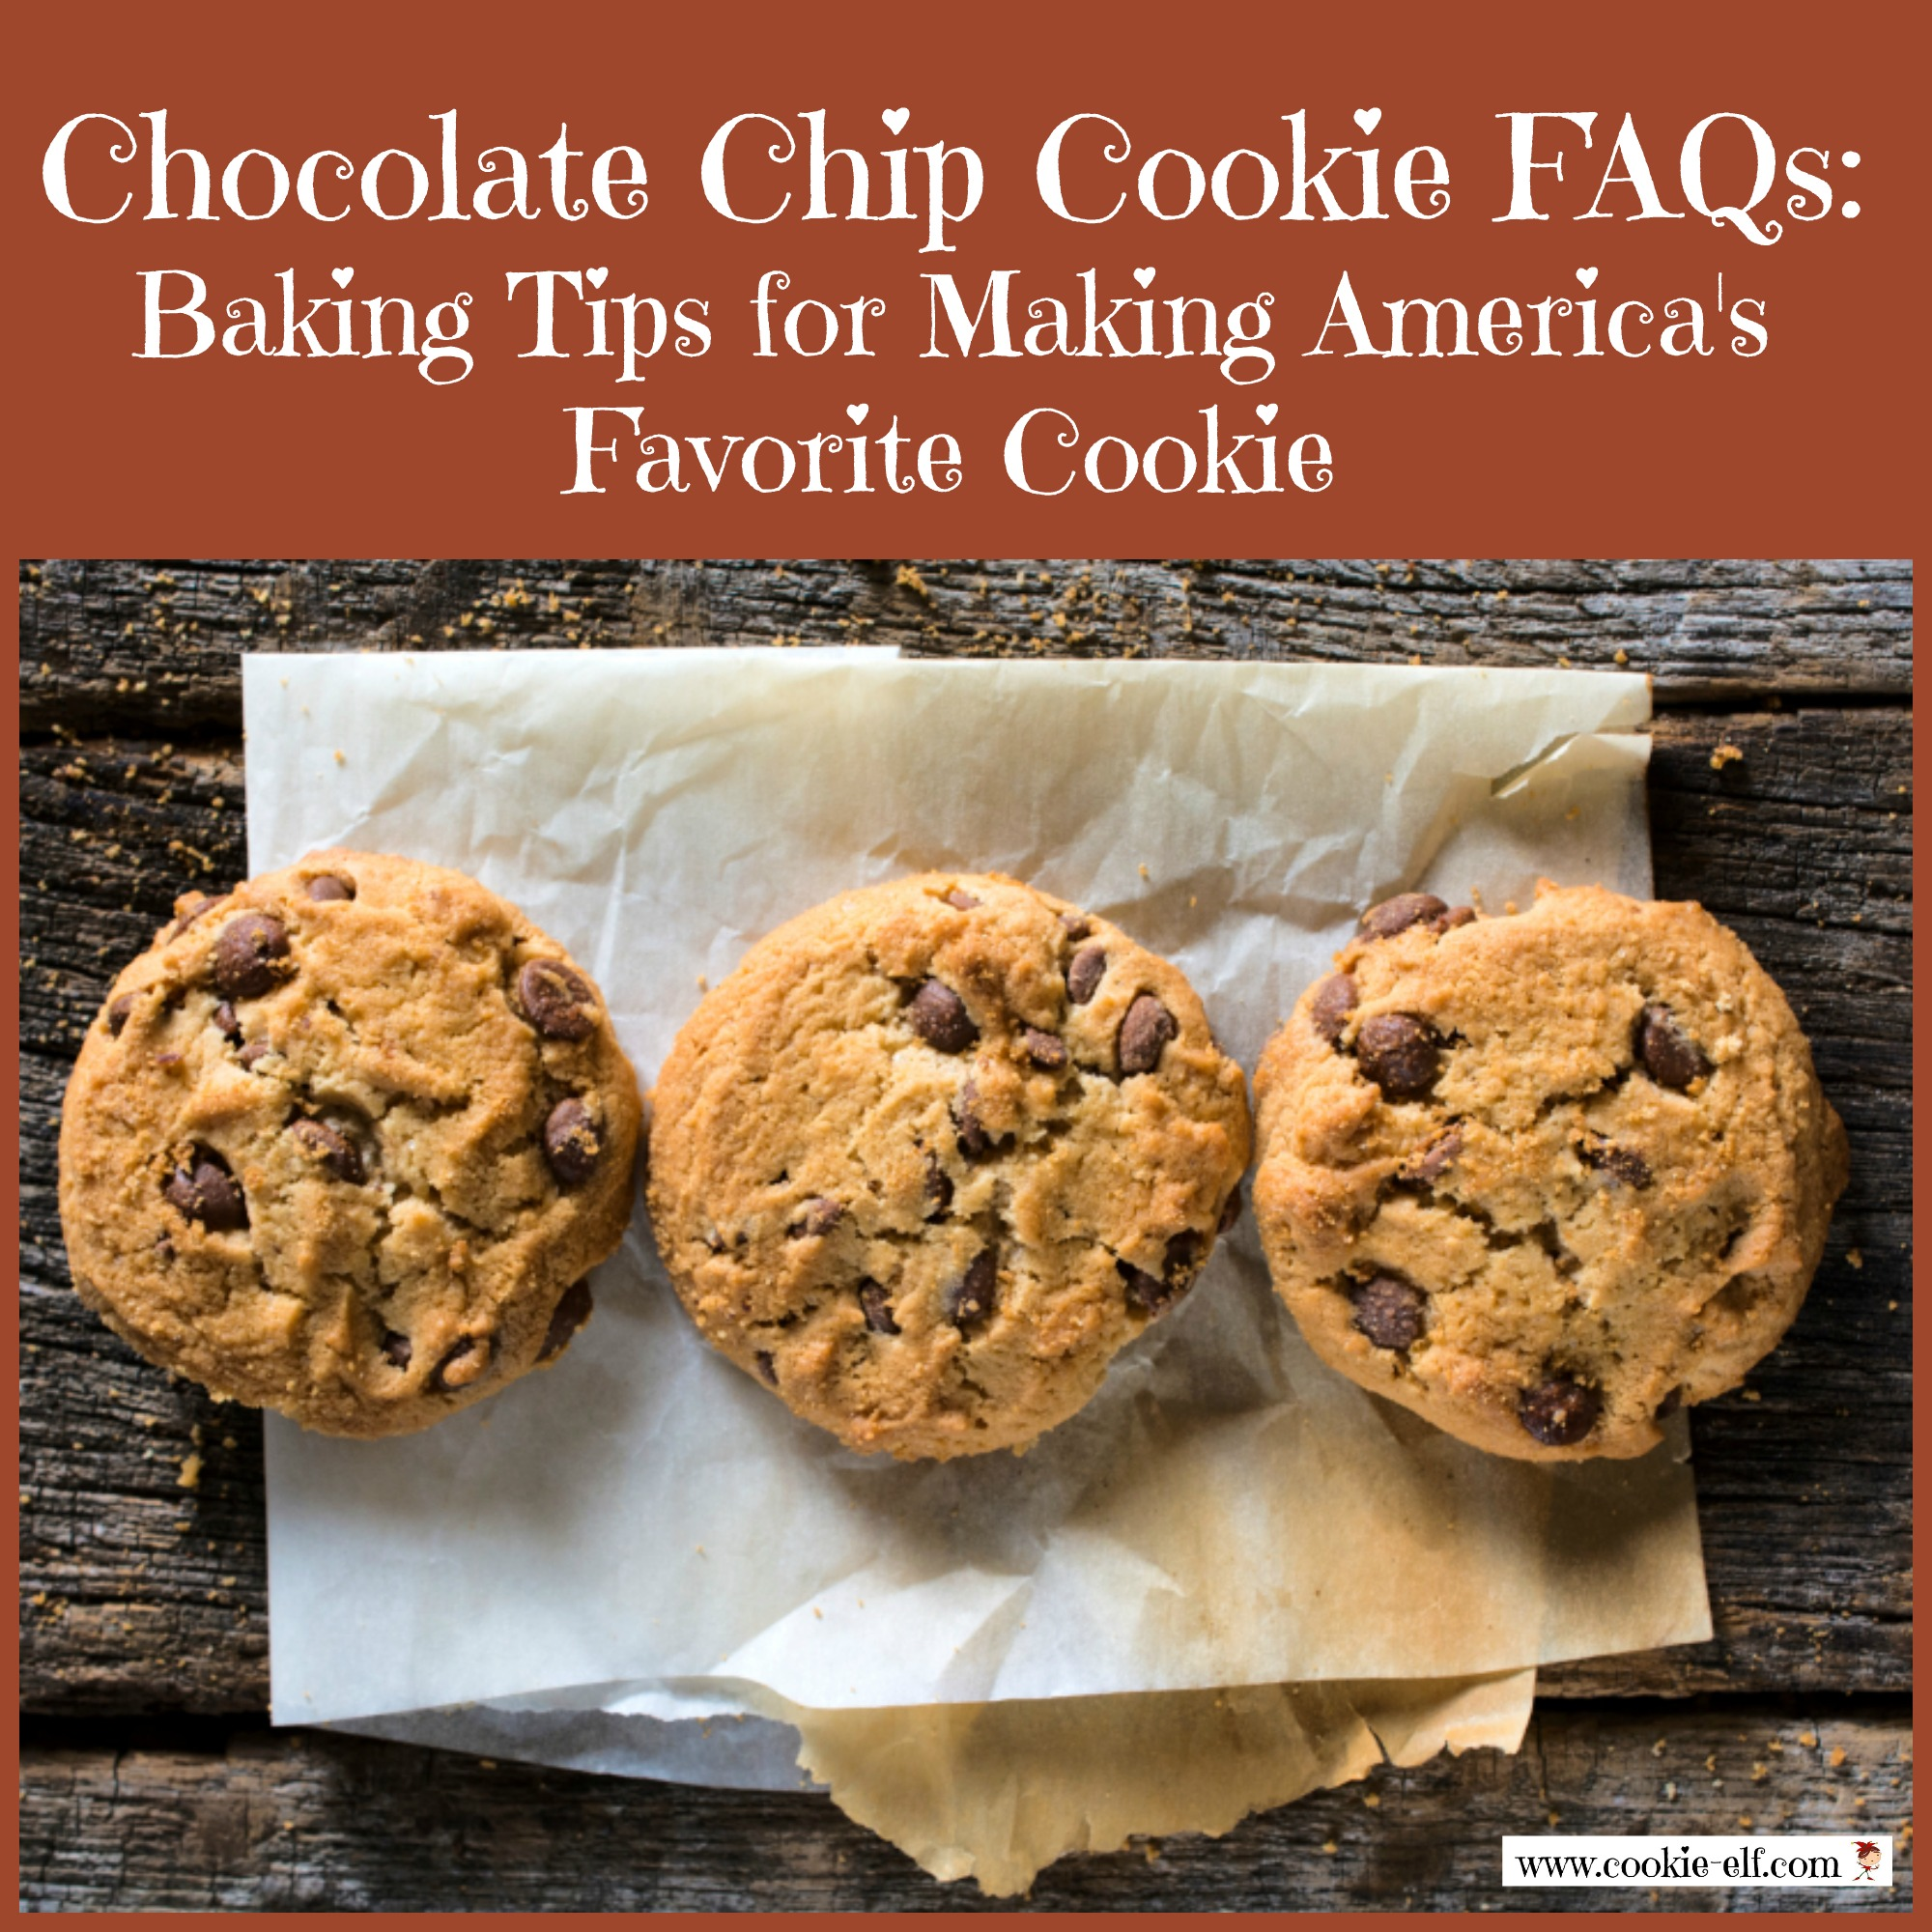 Chocolate Chip Cookie FAQs from The Cookie Elf